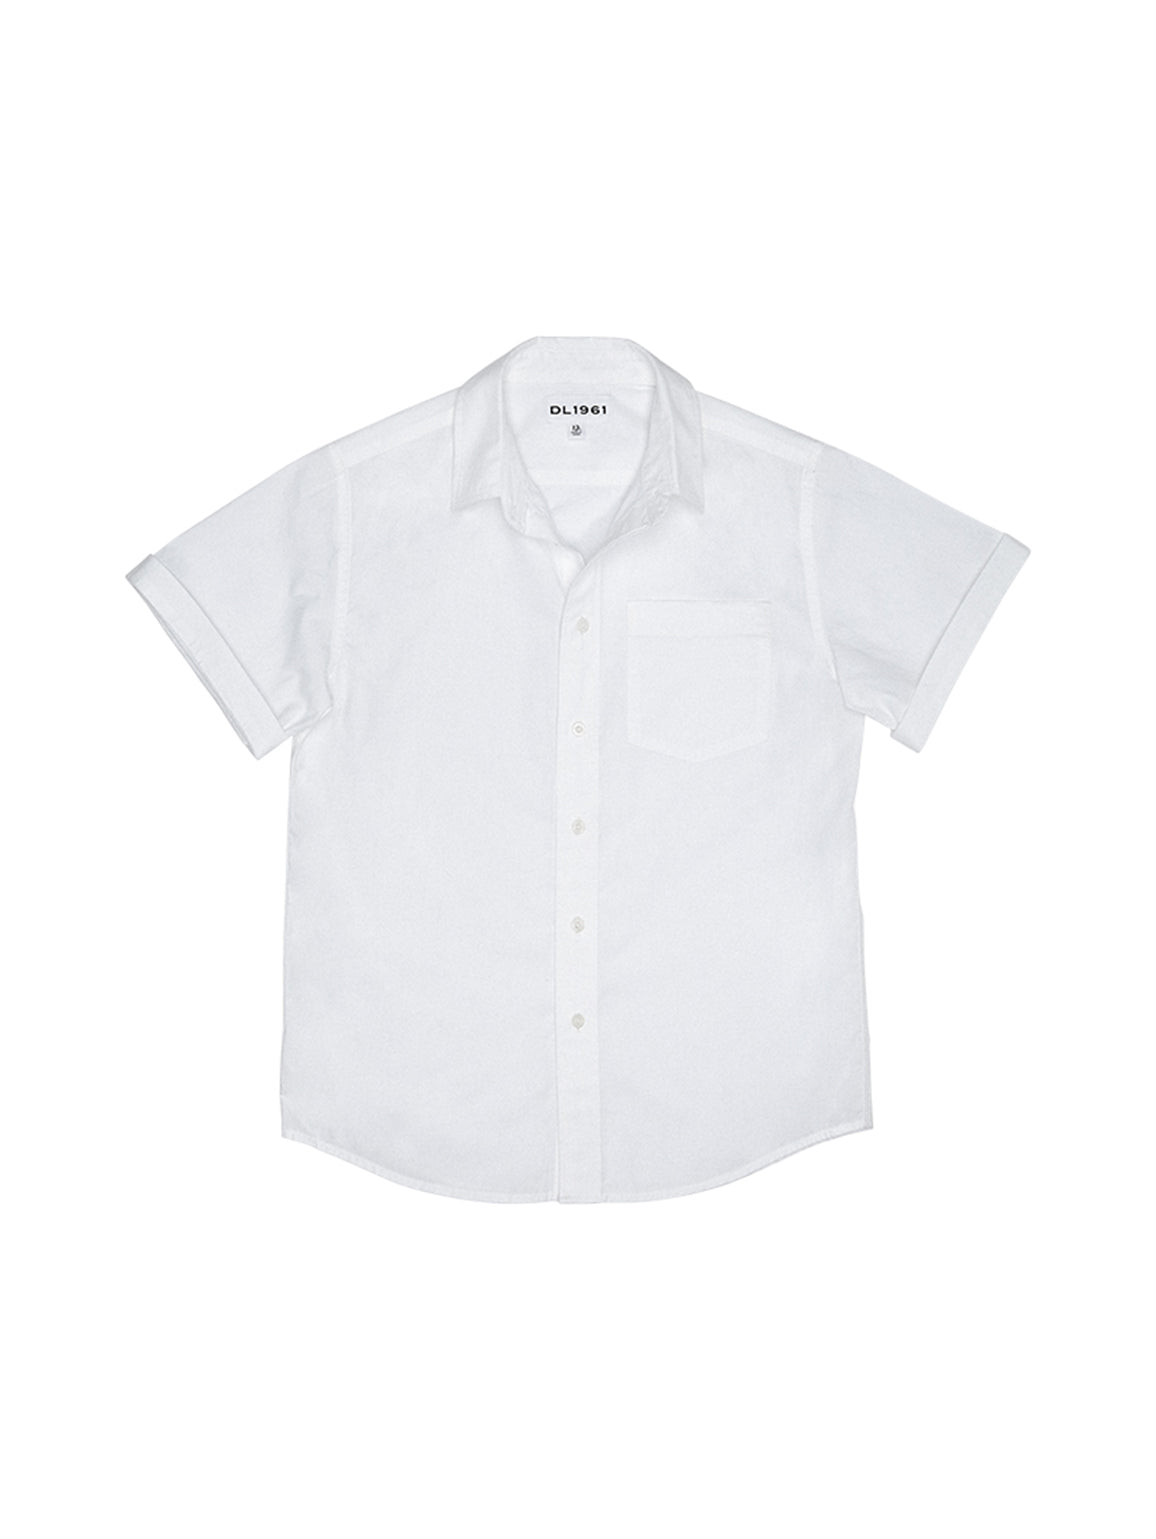 Image of Ash Unisex / White